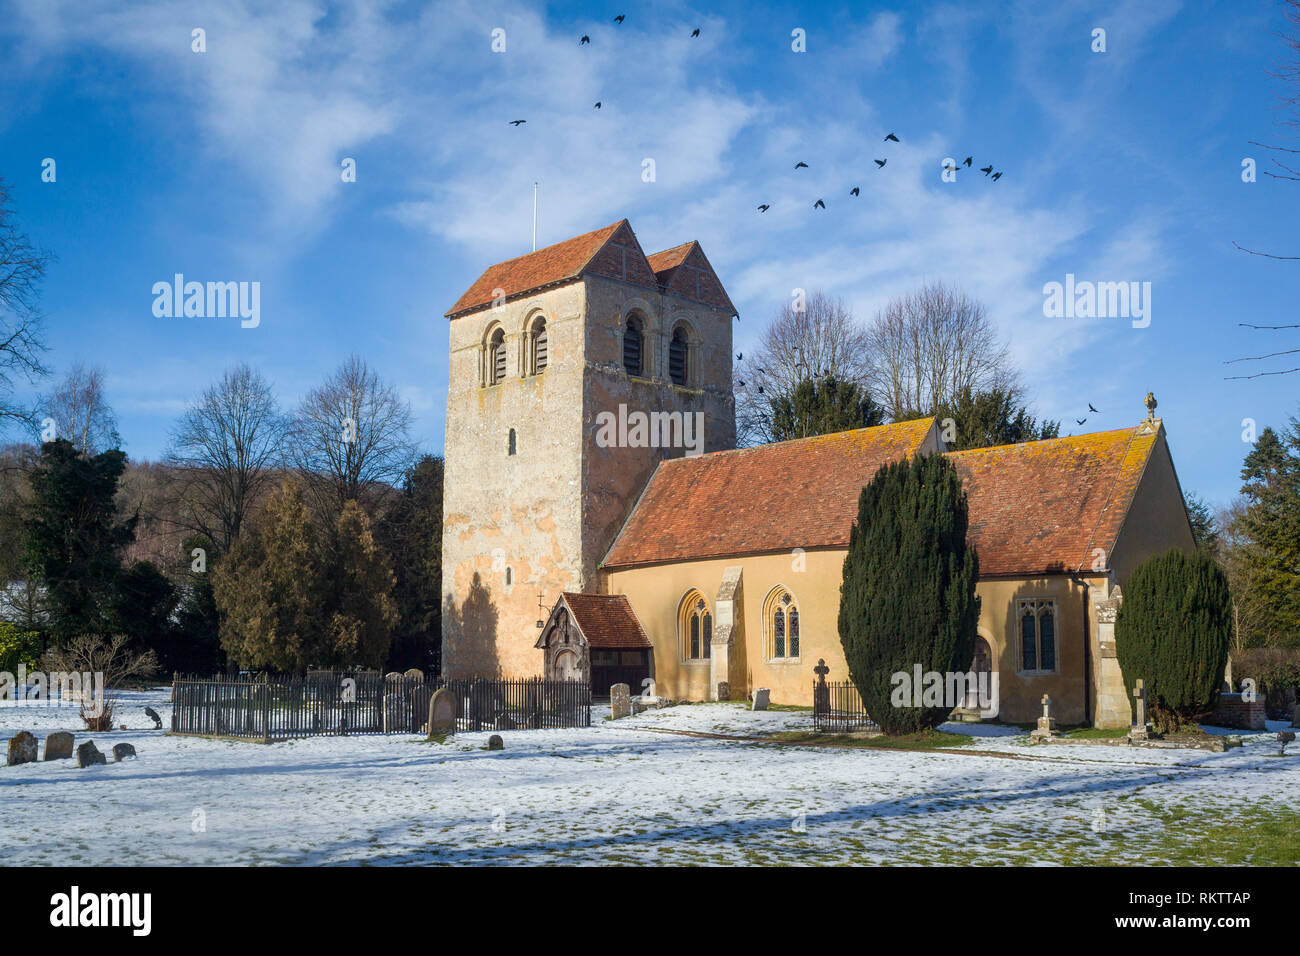 The Parish Church of St. Bartholomew's in Fingest with a light covering of snow and Jackdaws flying back to roost in the tower. - Stock Image